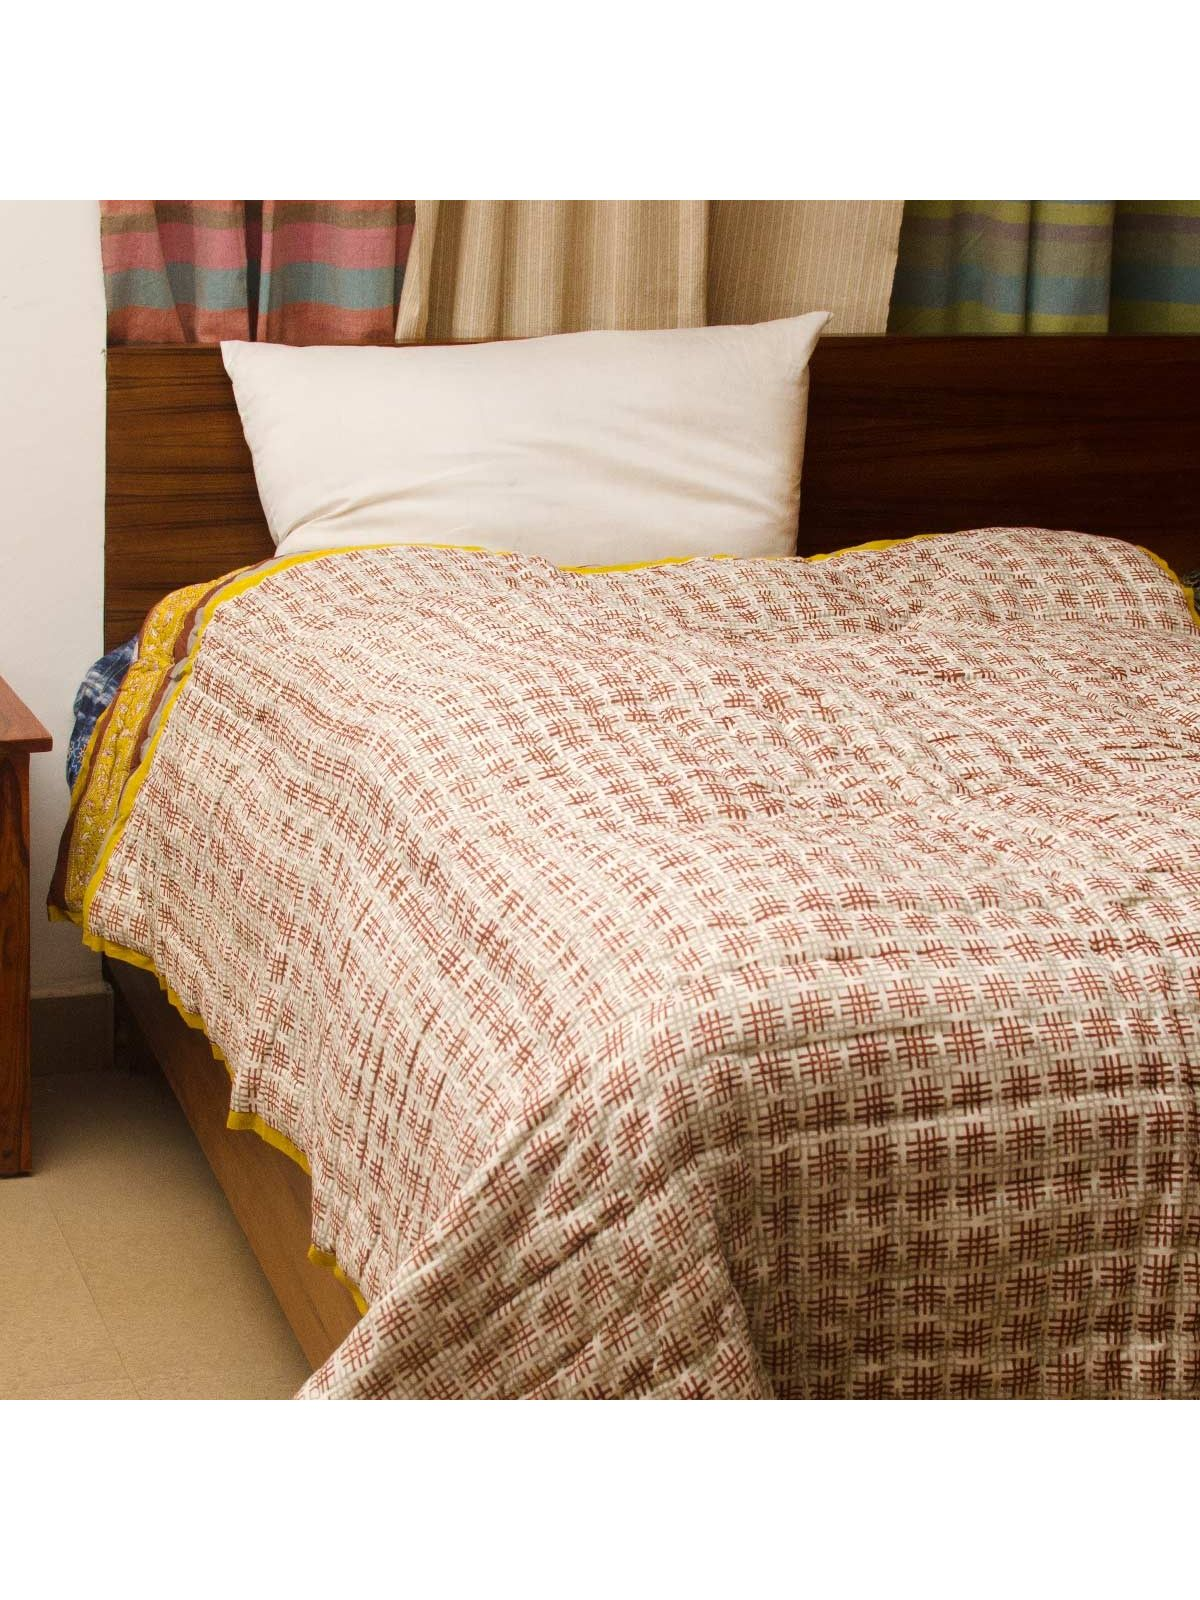 Brown Damask Block Printed Cotton Single Quilt